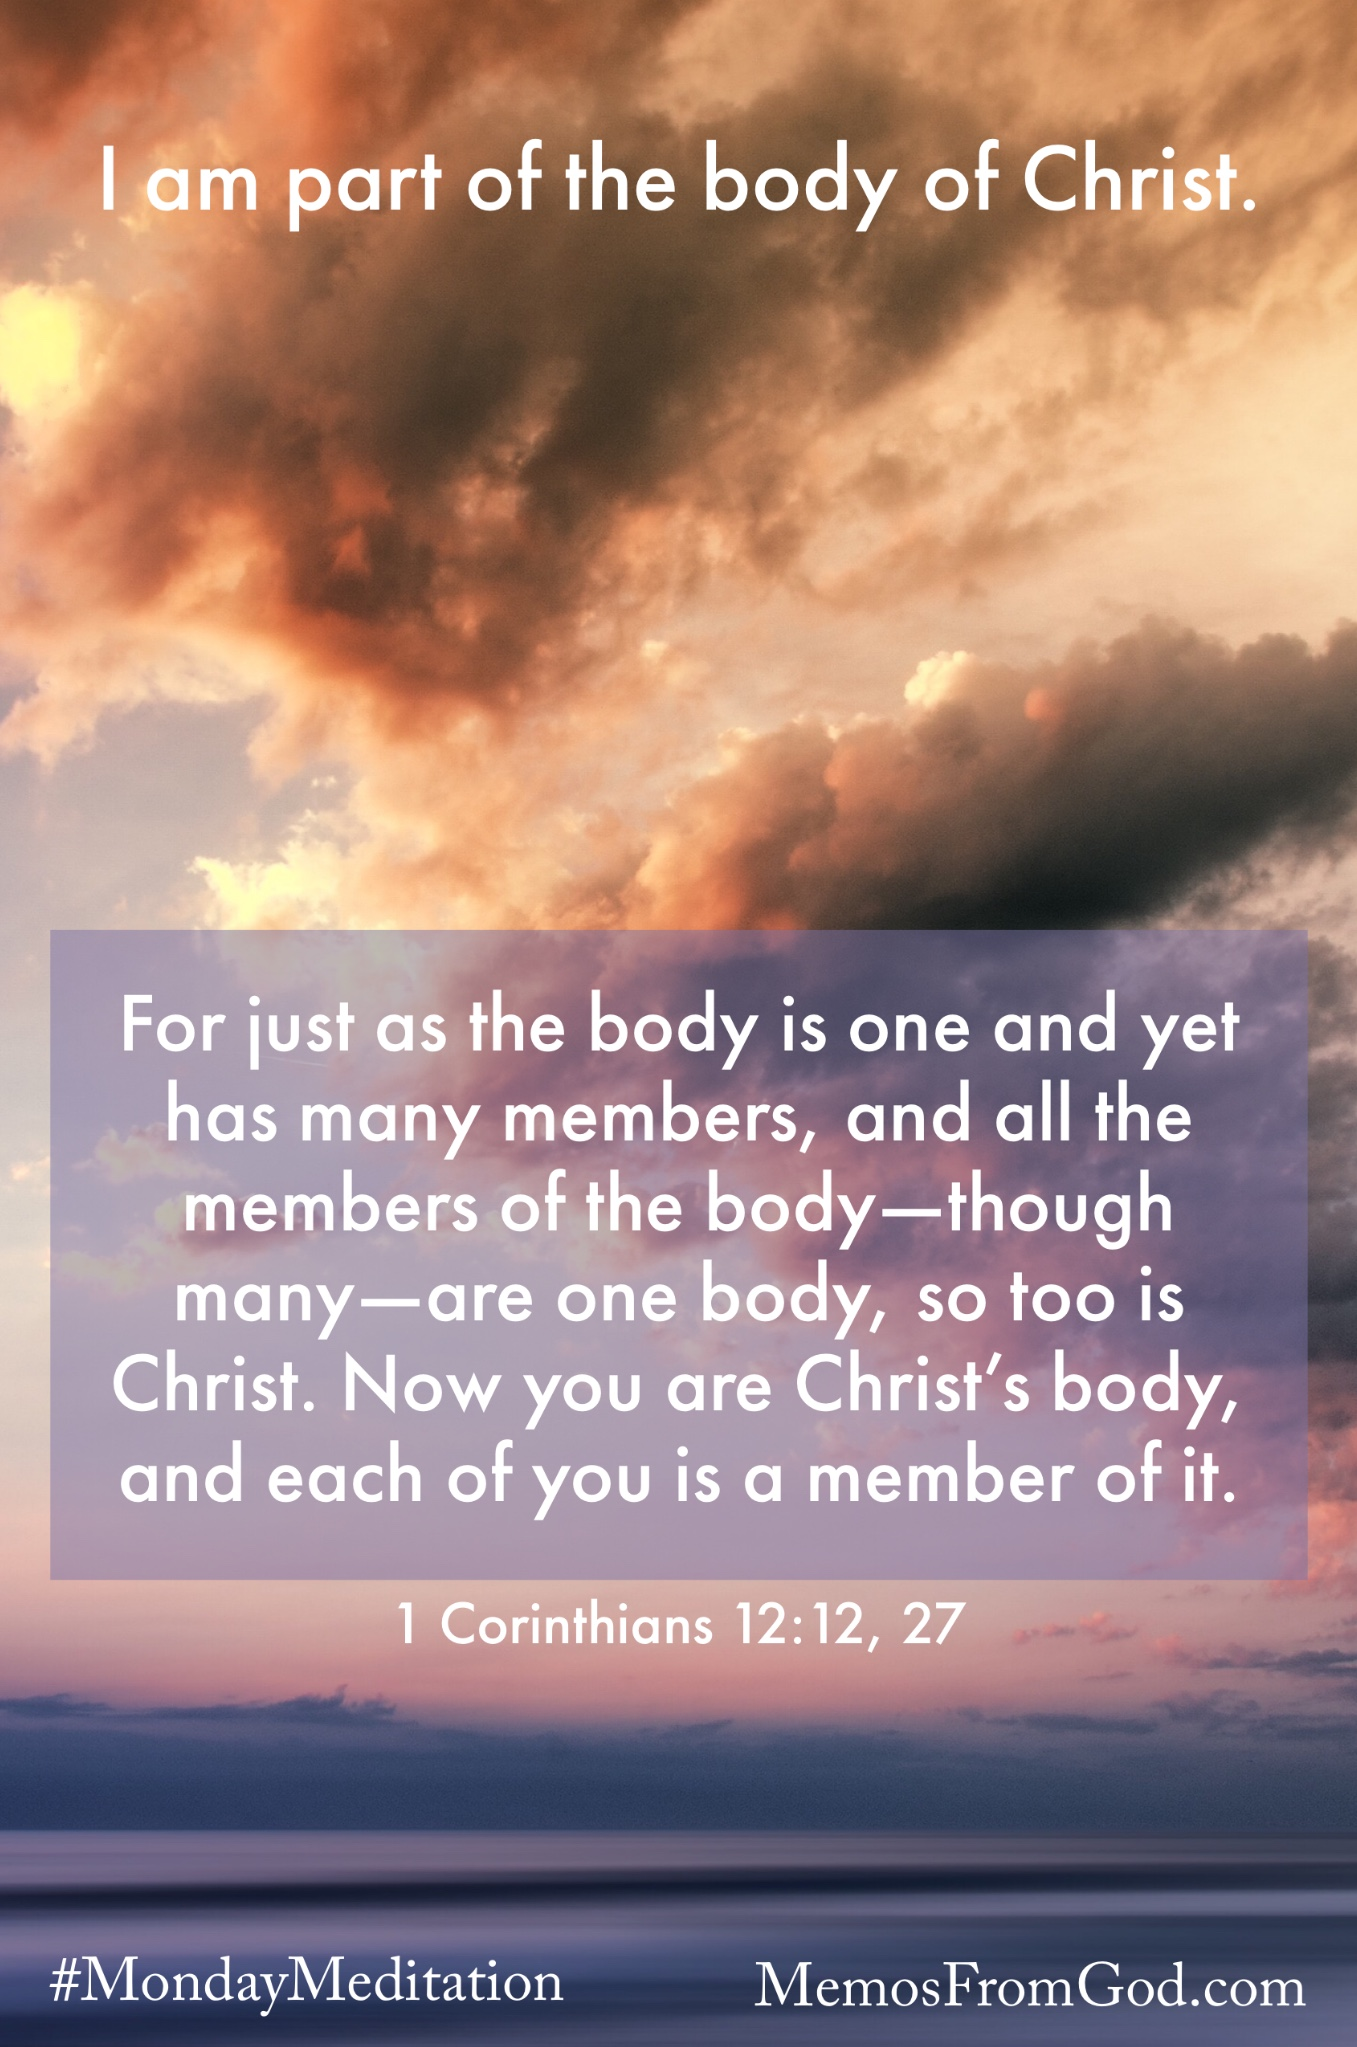 A pink and purple sky with dark rust-tinted clouds. Caption: For just as the body is one and yet has many members, and all the members of the body—though many—are one body, so too is Christ. Now you are Christ's body, and each of you is a member of it. 1 Corinthians 12:12, 27